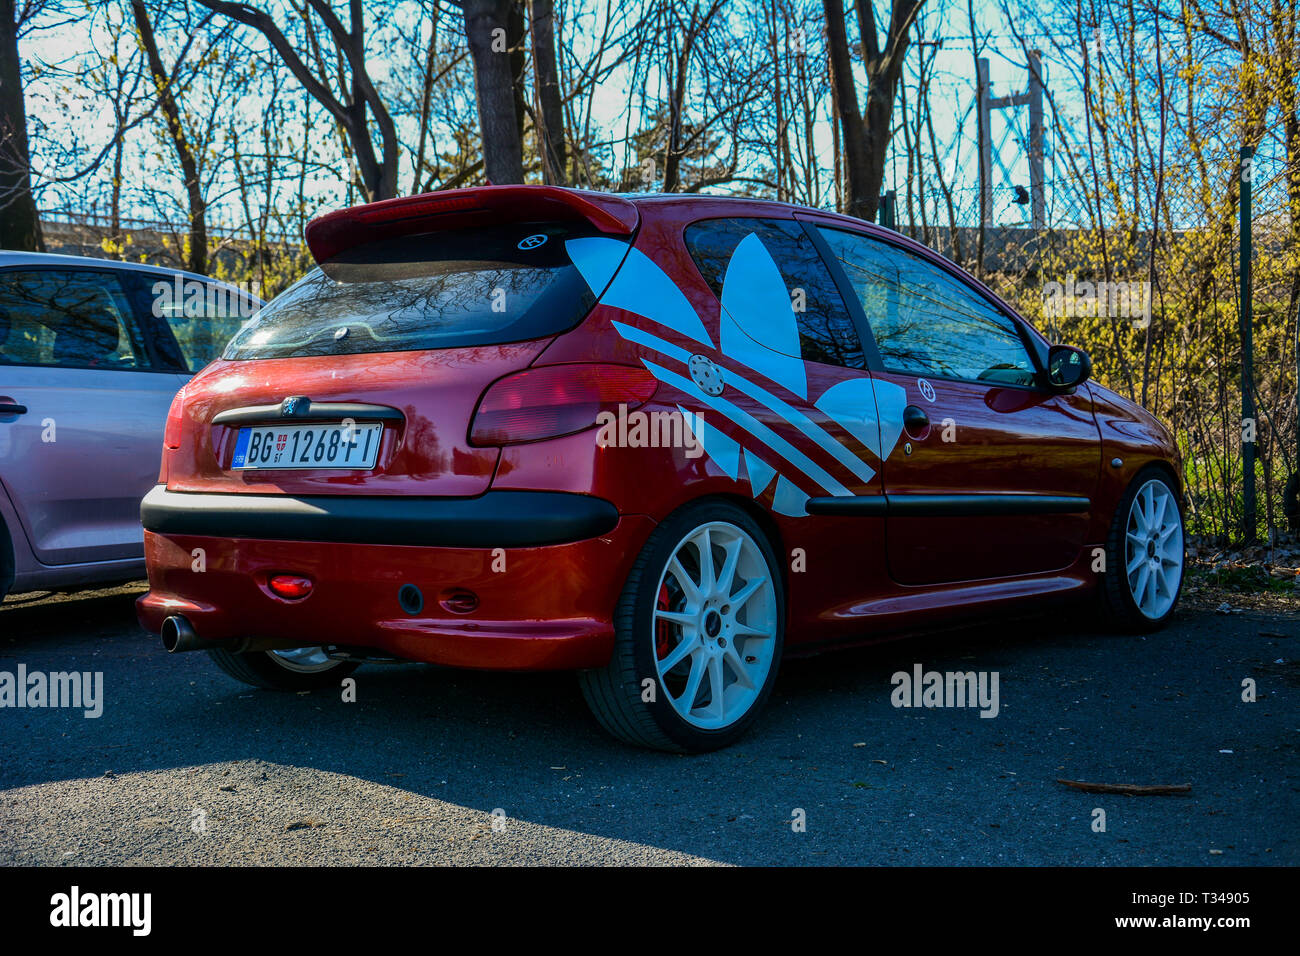 Peugeot 206 Tuning Last Part Stock Photo Alamy